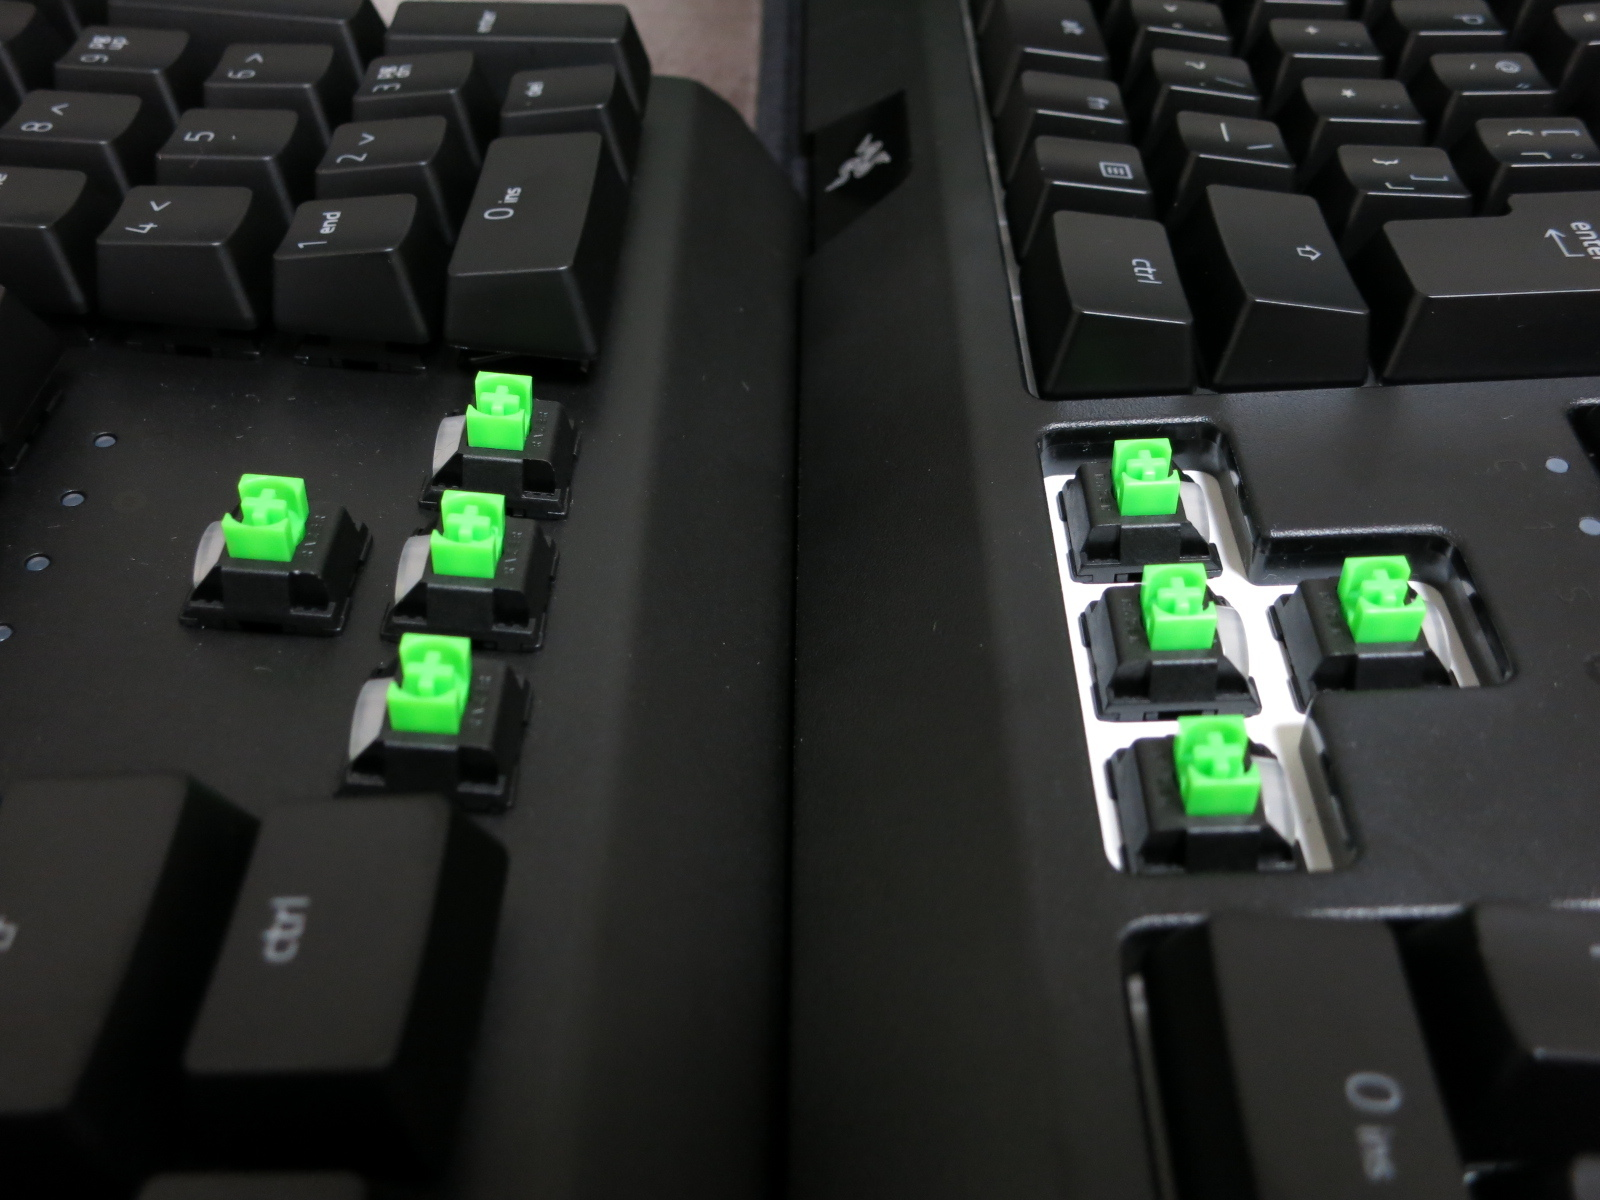 Razer_BlackWidow_2019vsElite_17b.jpg